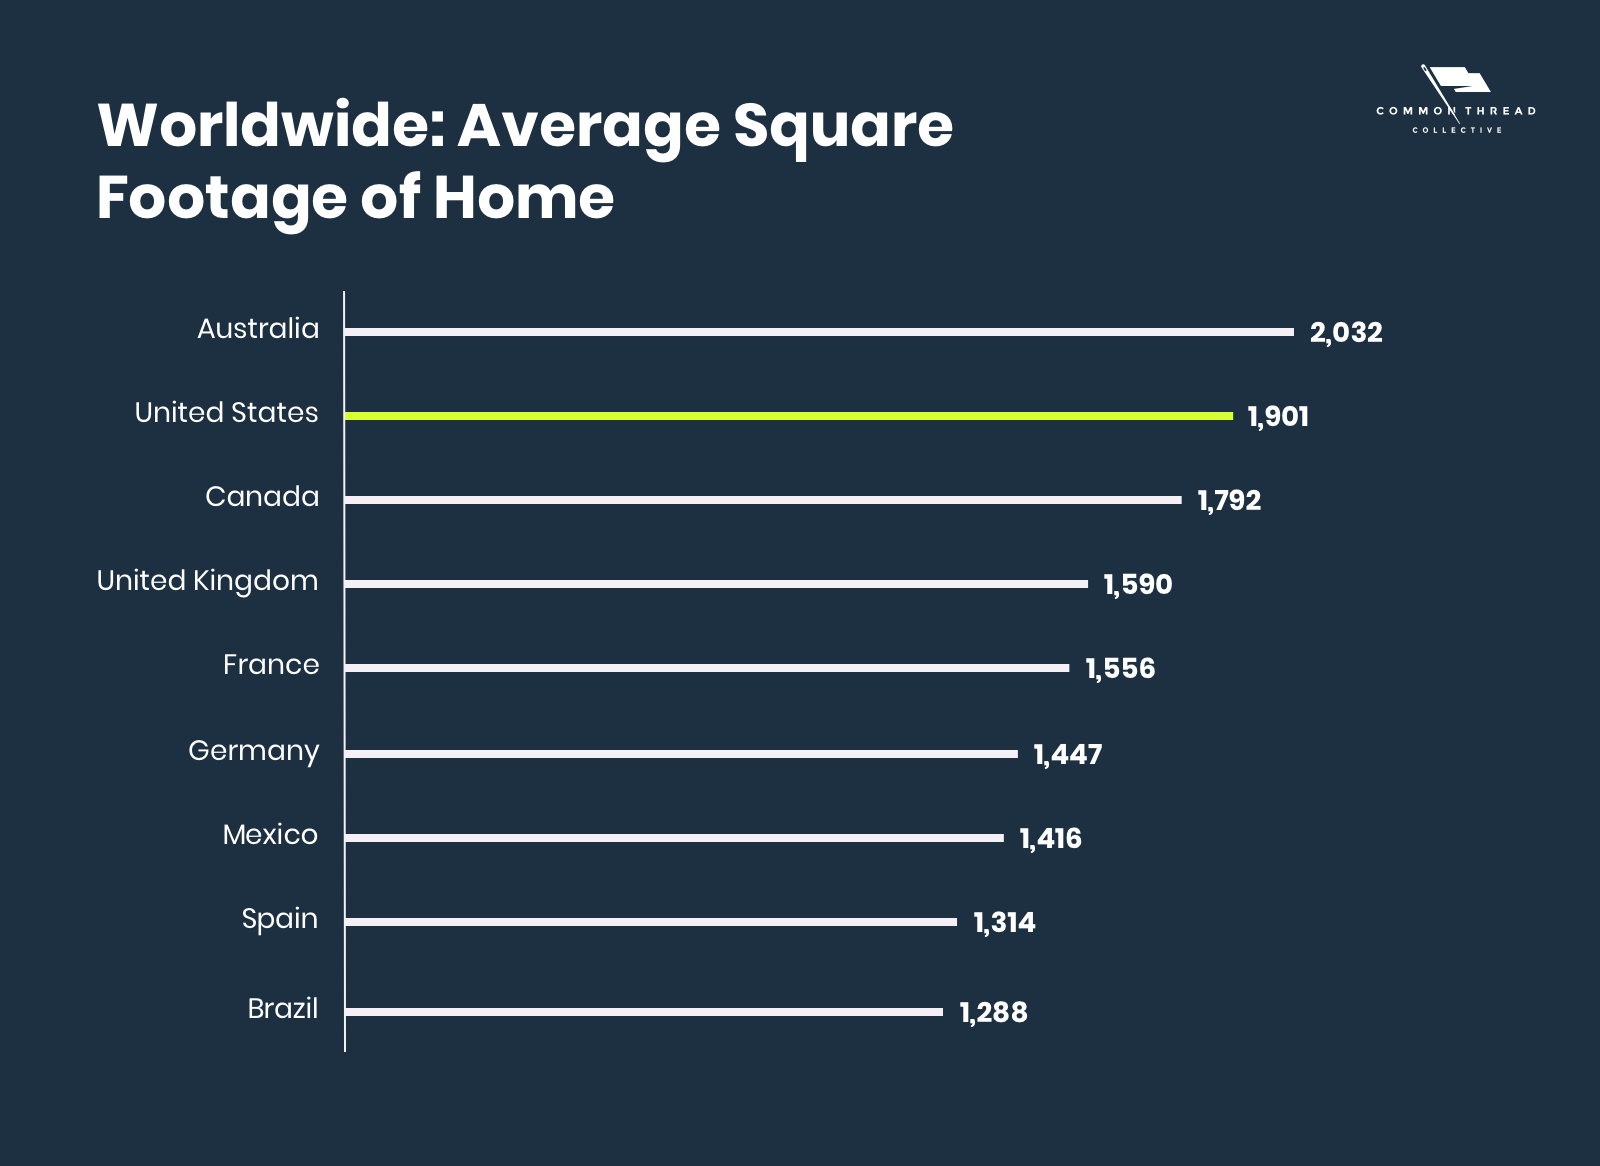 Worldwide Average Square Footage of a Home